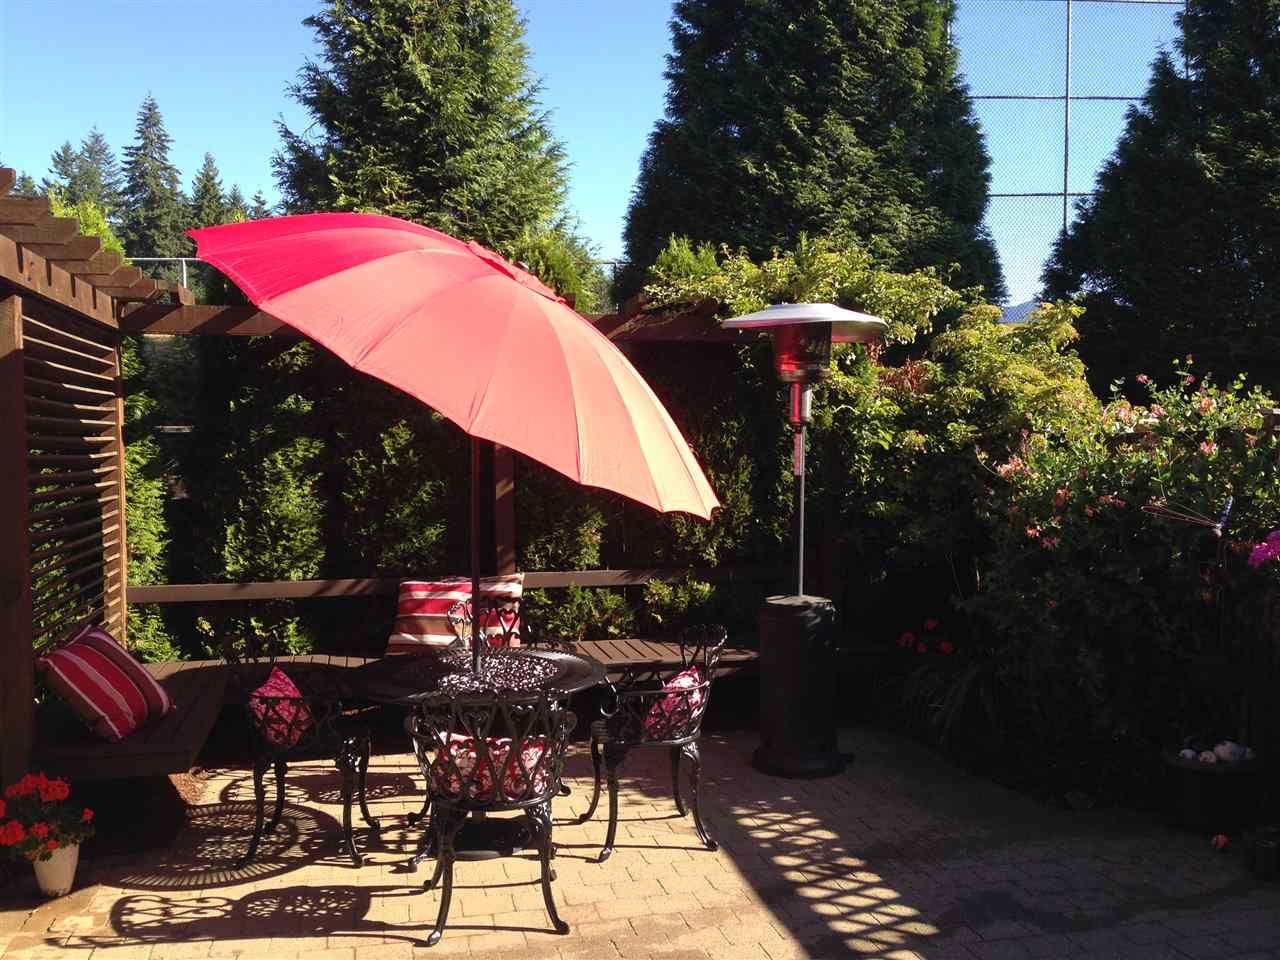 """Photo 2: Photos: 3087 MOSS Court in Coquitlam: Westwood Plateau House for sale in """"WESTWOOD PLATEAU"""" : MLS®# R2154481"""